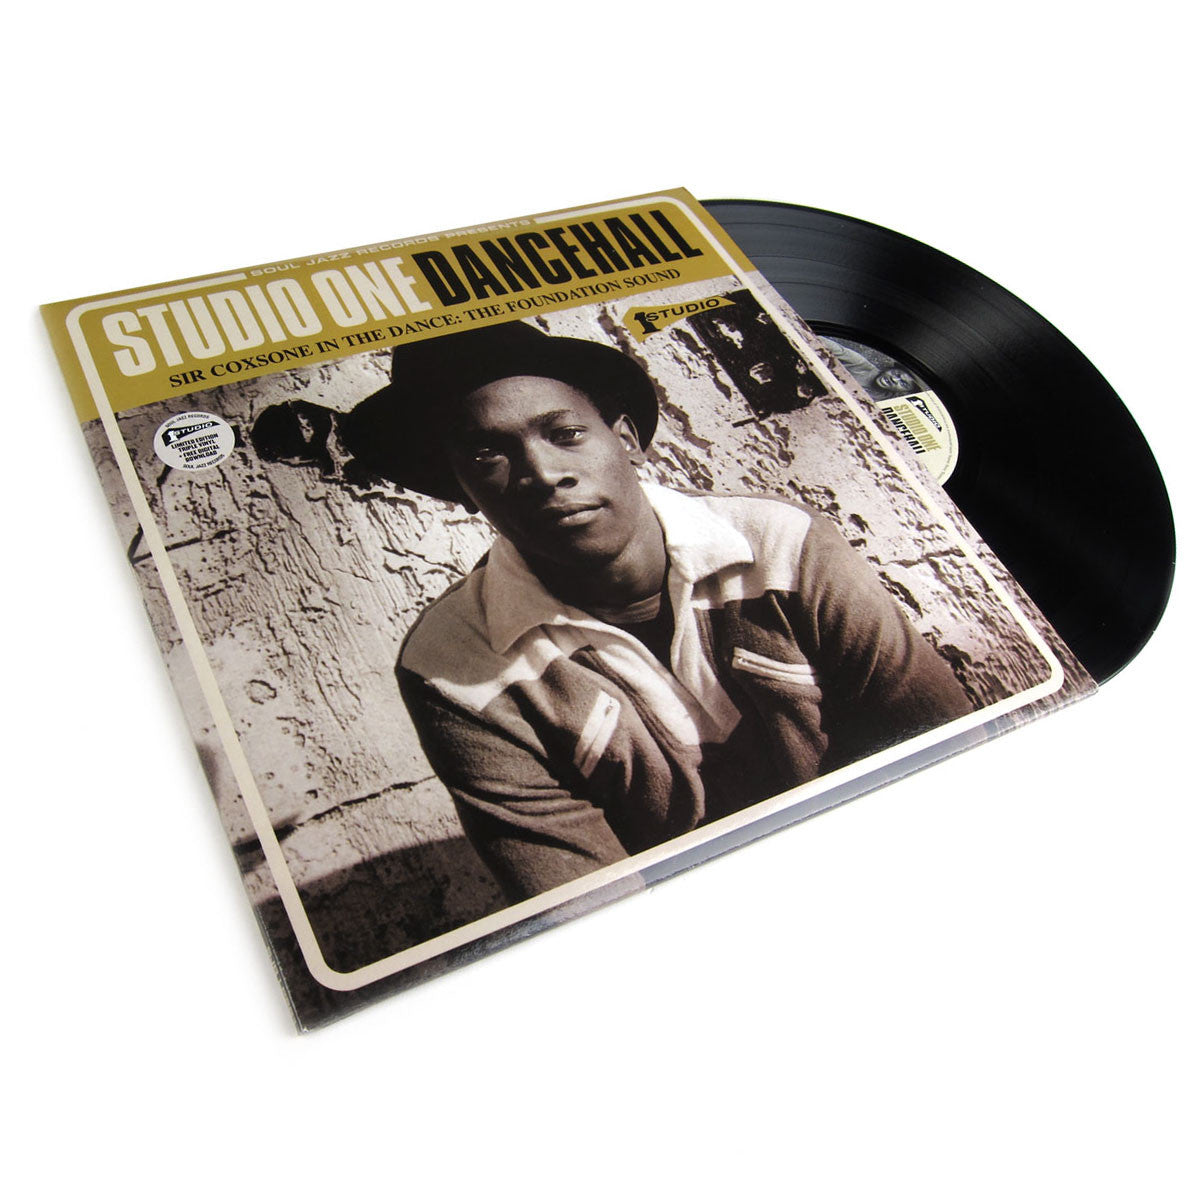 Soul Jazz: Studio One Dancehall - Sir Coxsone In The Dance The Foundation Sound (Limited Edition, Free MP3) Vinyl 3LP